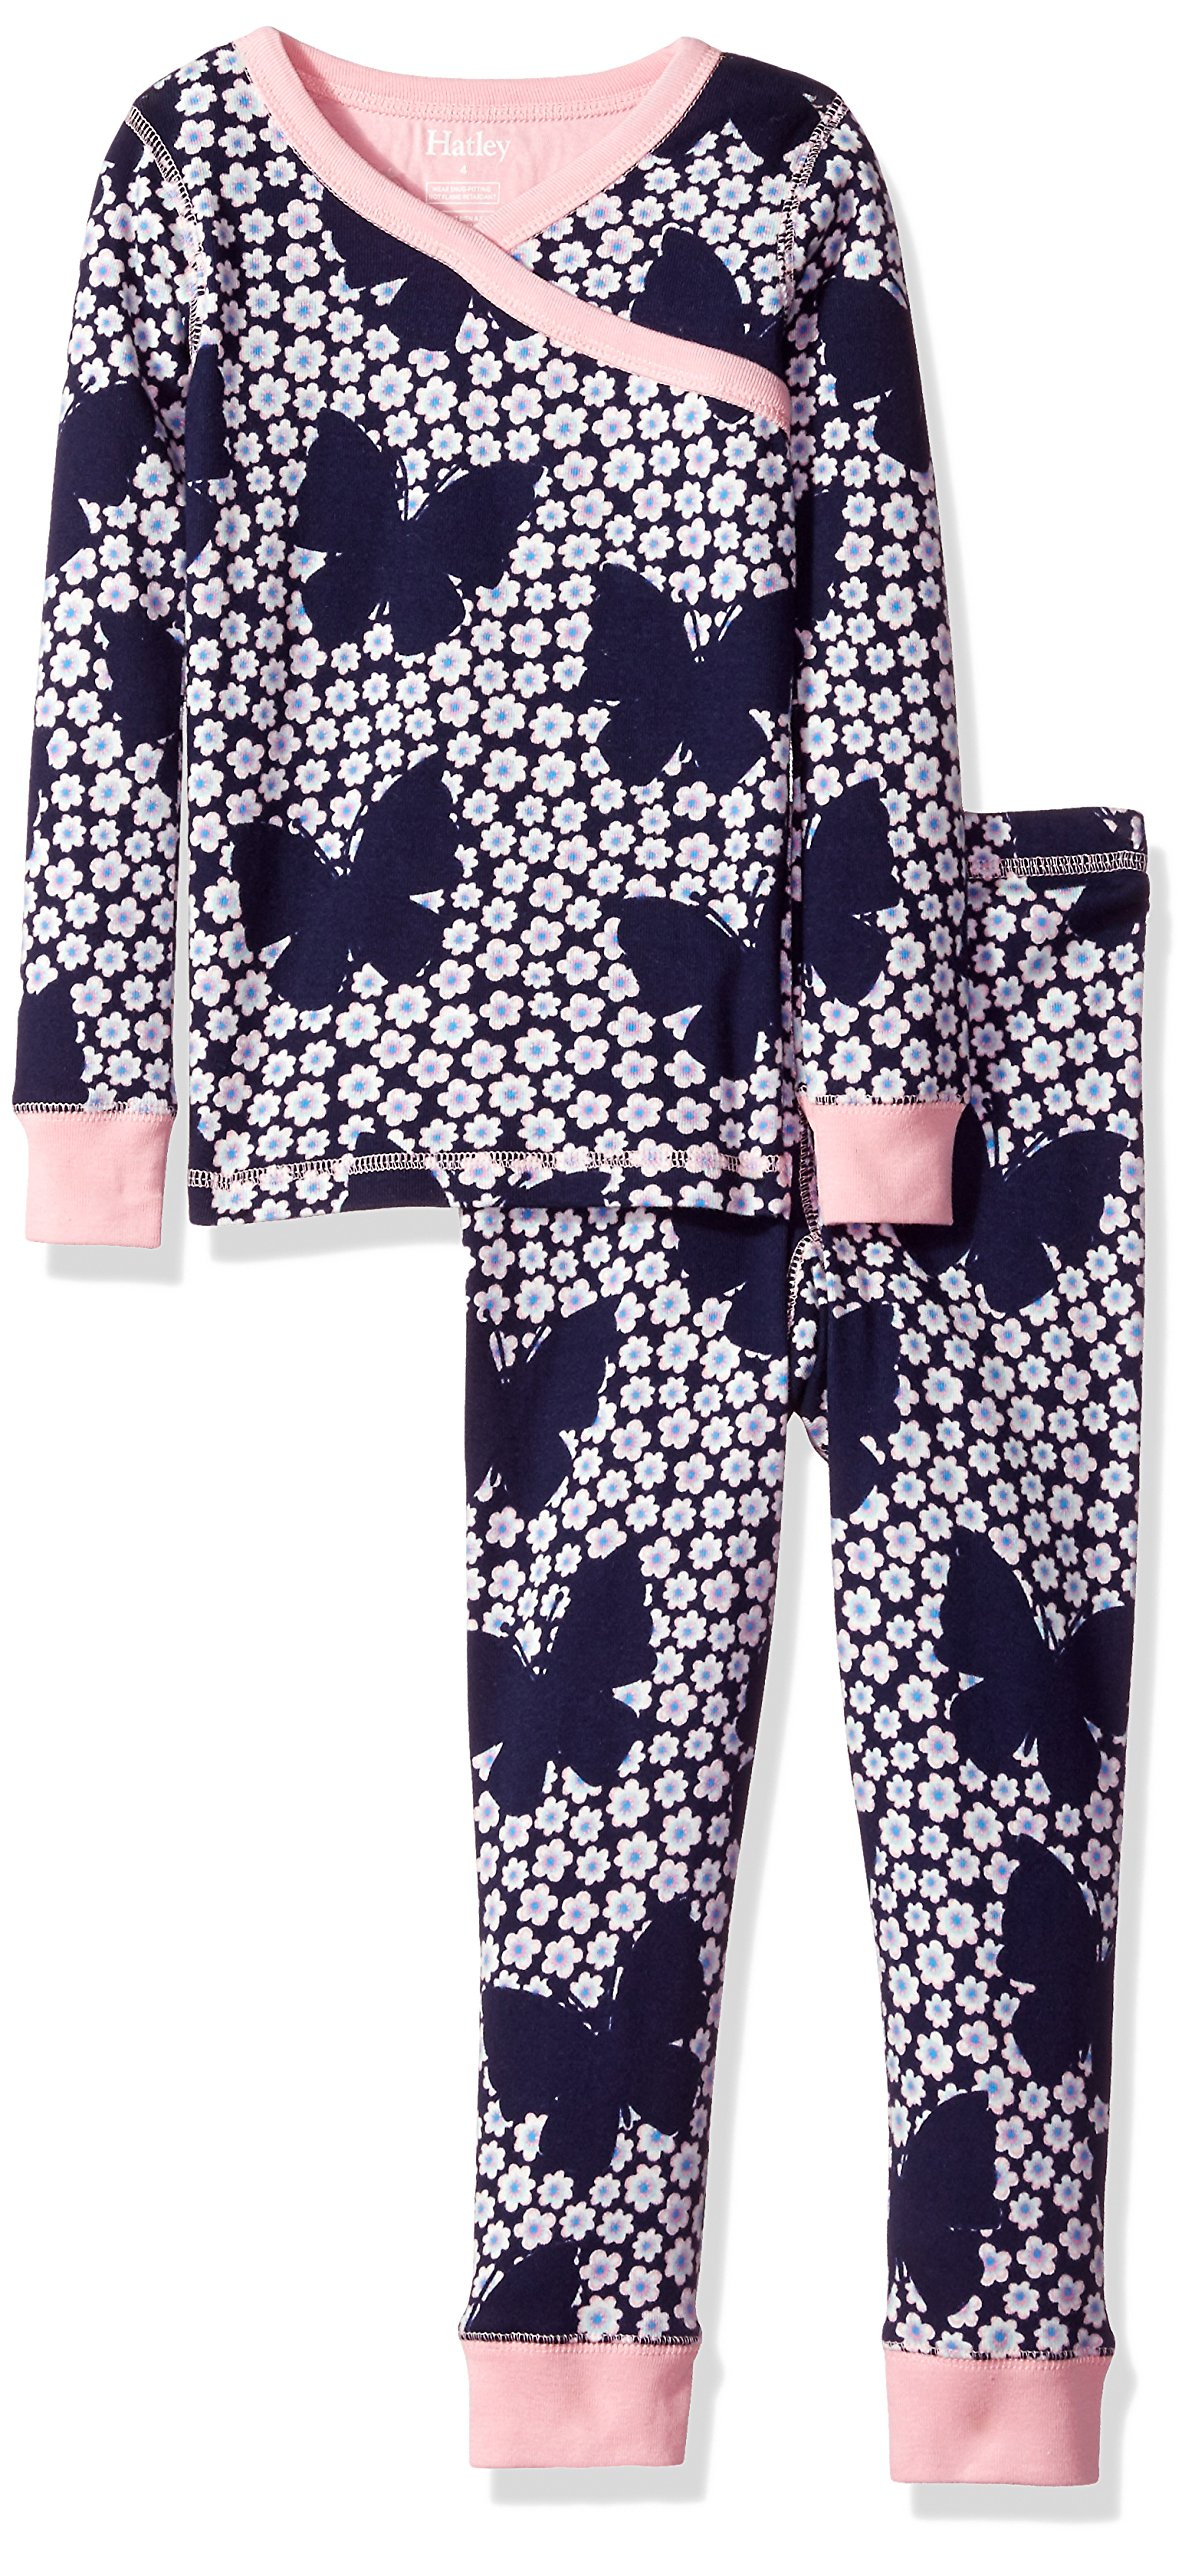 Hatley Little Girls' Organic Cotton Long Sleeve Printed Pajama Sets, Butterflies and Buds, 4 Years